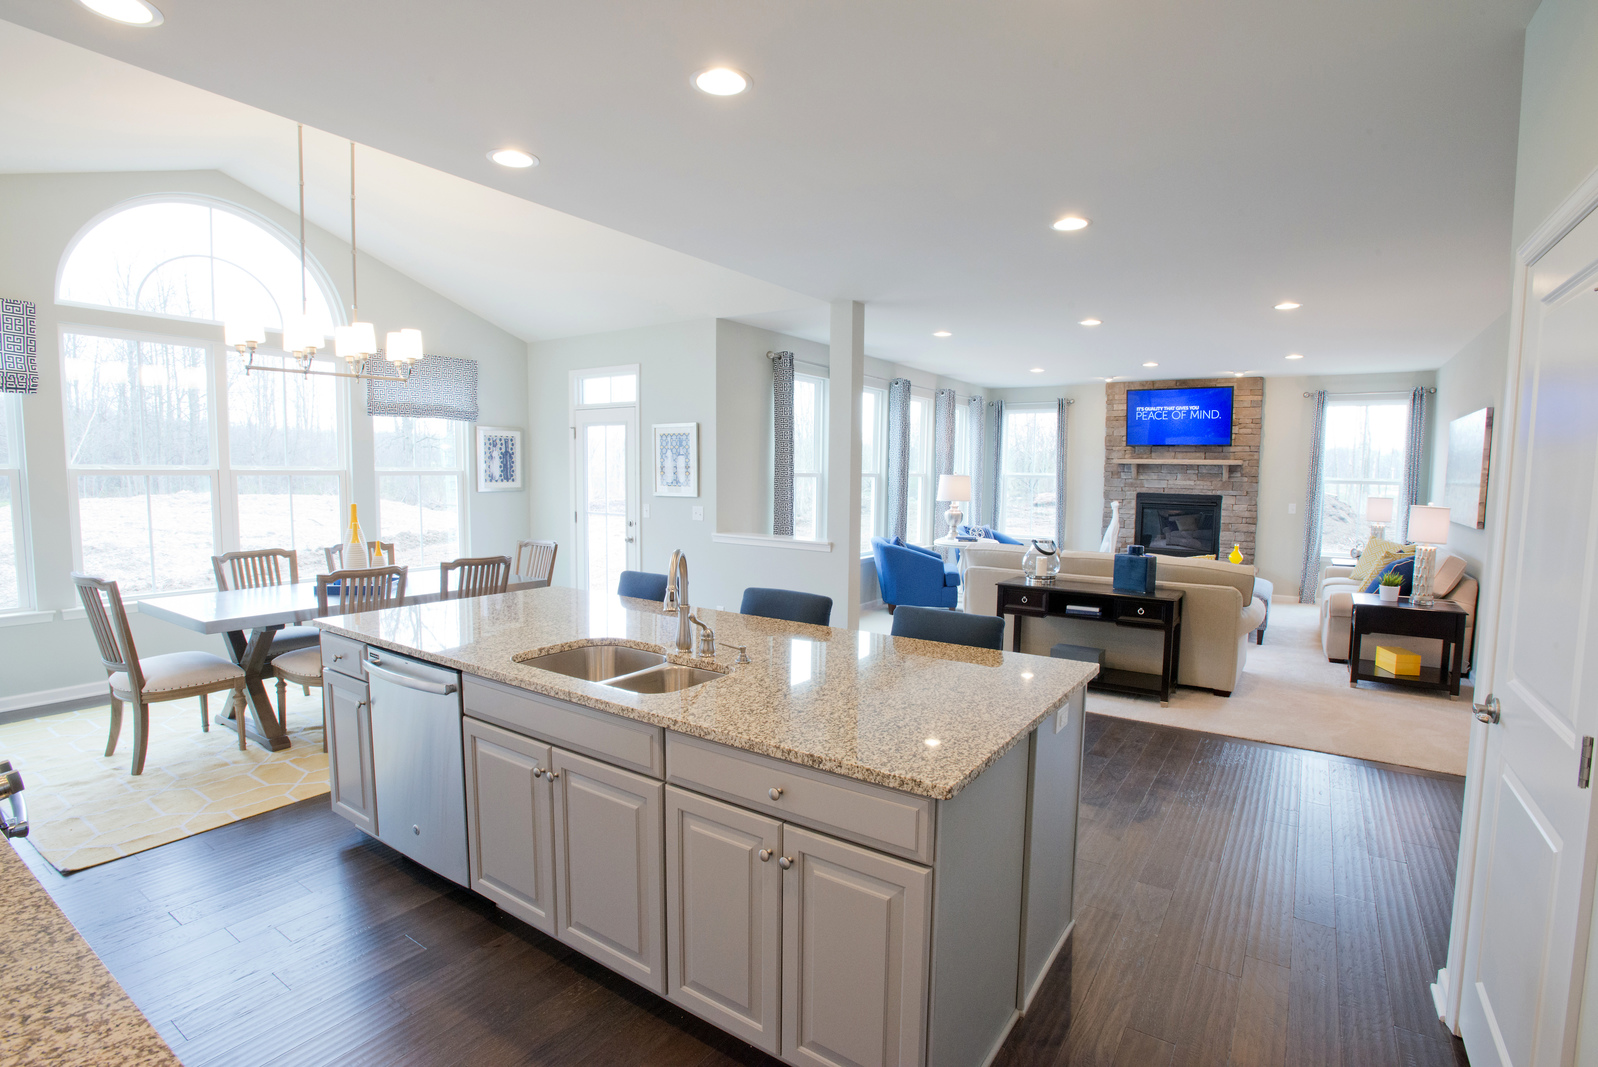 New Homes for sale at Tuscany Hills in Victor, NY within the Victor ...